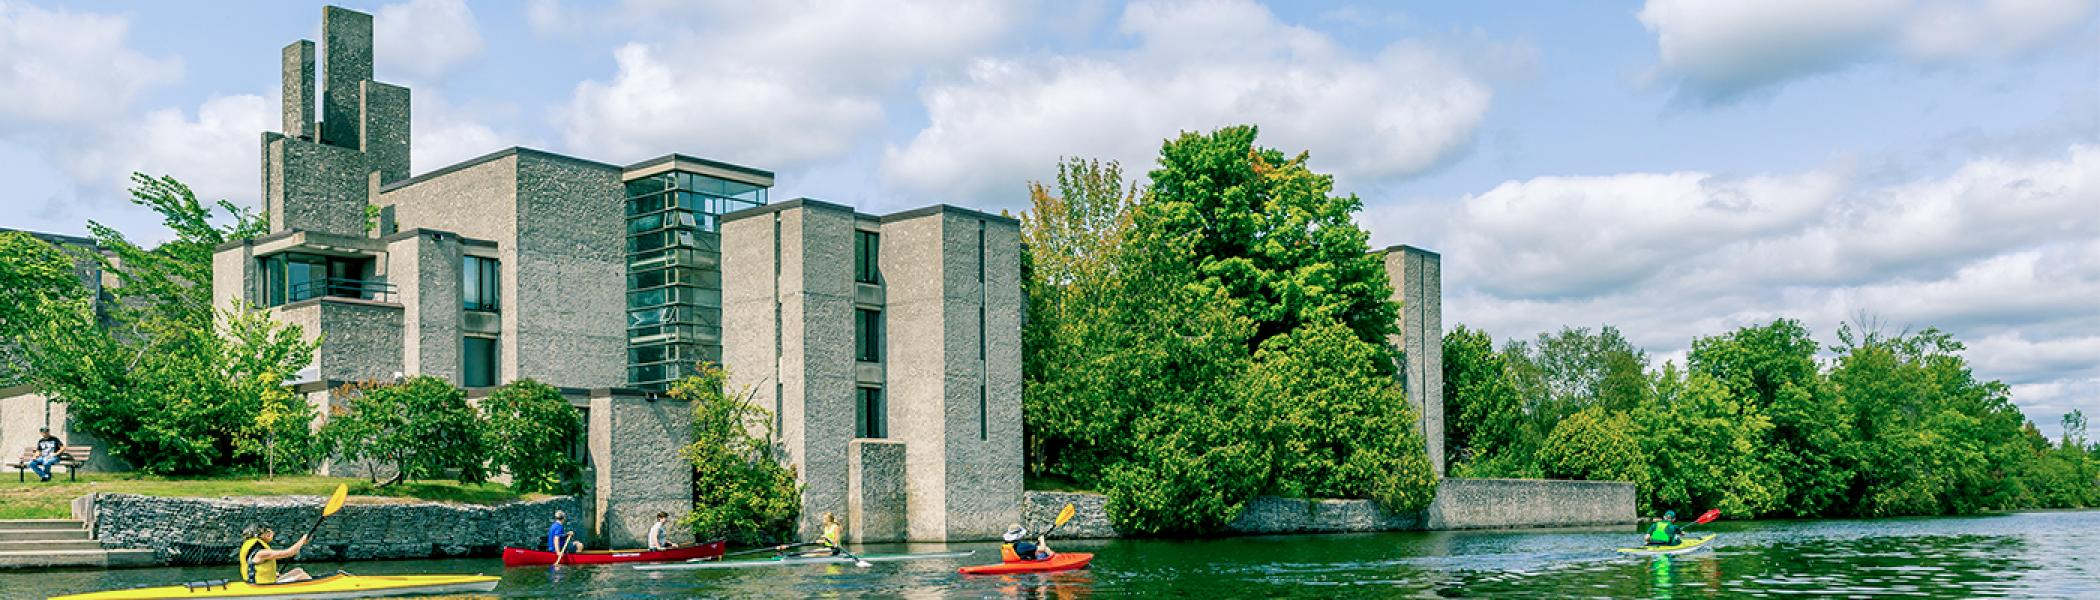 Four people kayaking downstream in front of Champlain college on a sunny day.